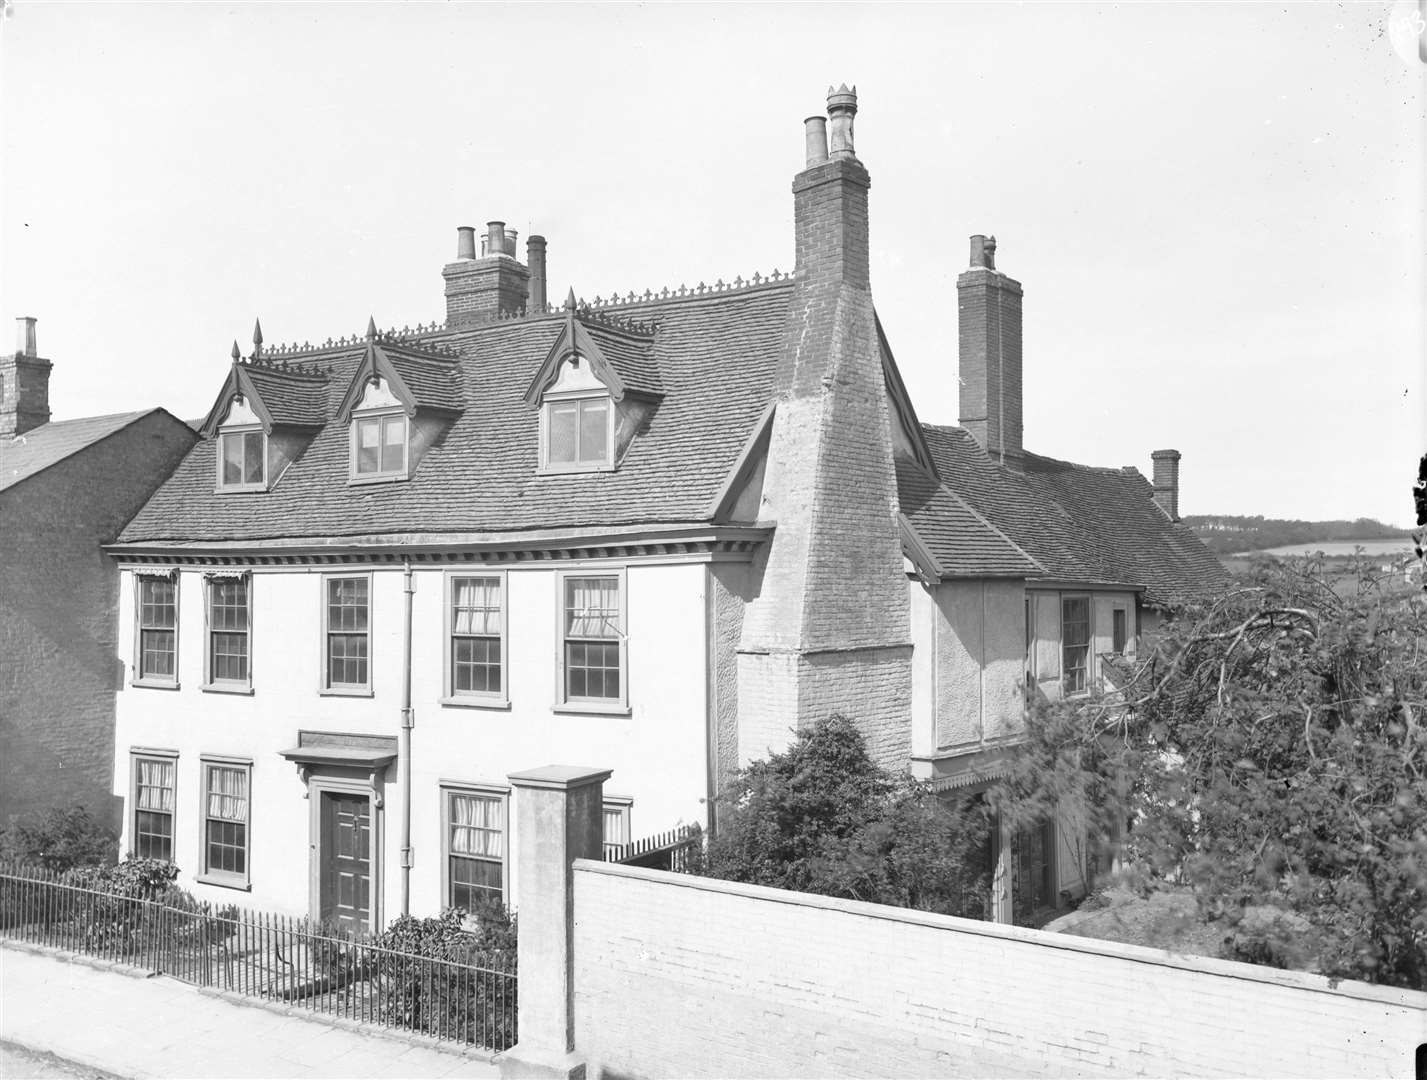 Linnet House, Southgate Street. From the Spanton Jarman collection (4367026)